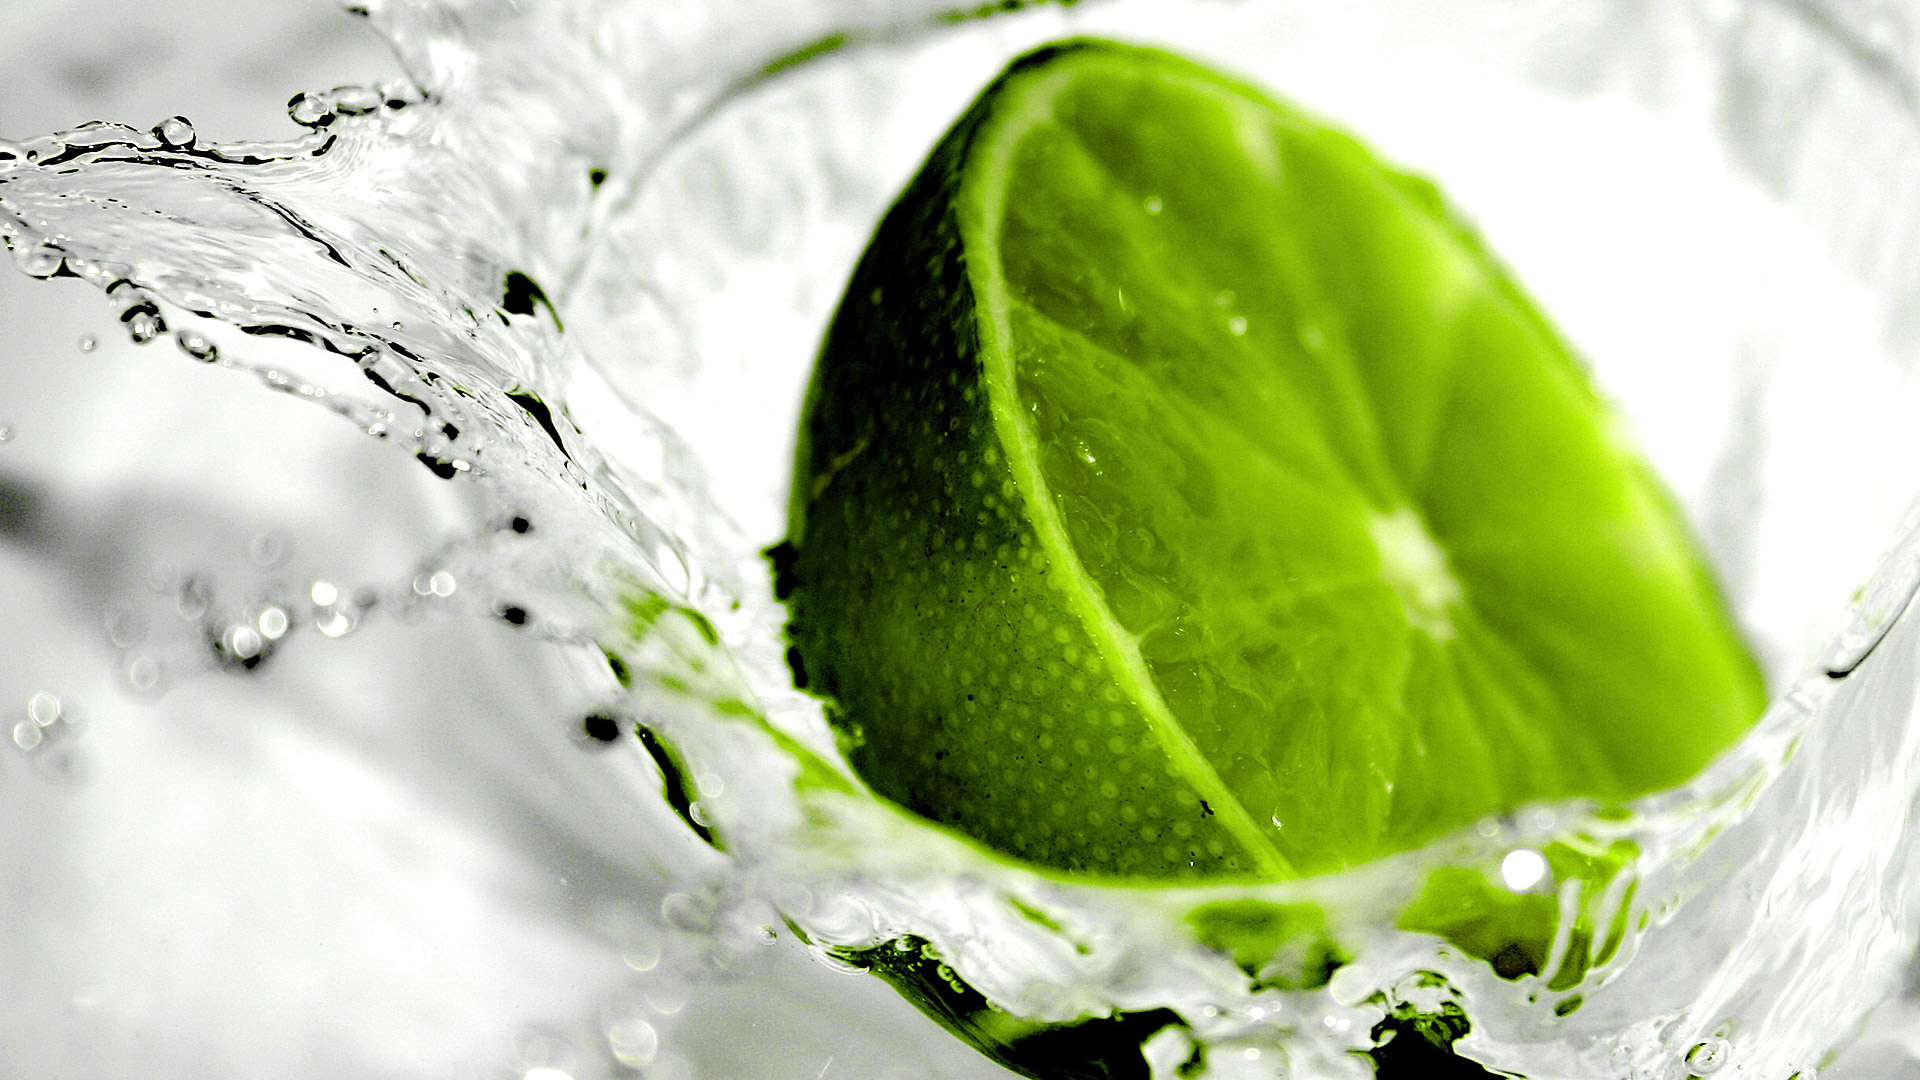 Green Lime HDTV 1080p Wallpapers HD Wallpapers 1920x1080